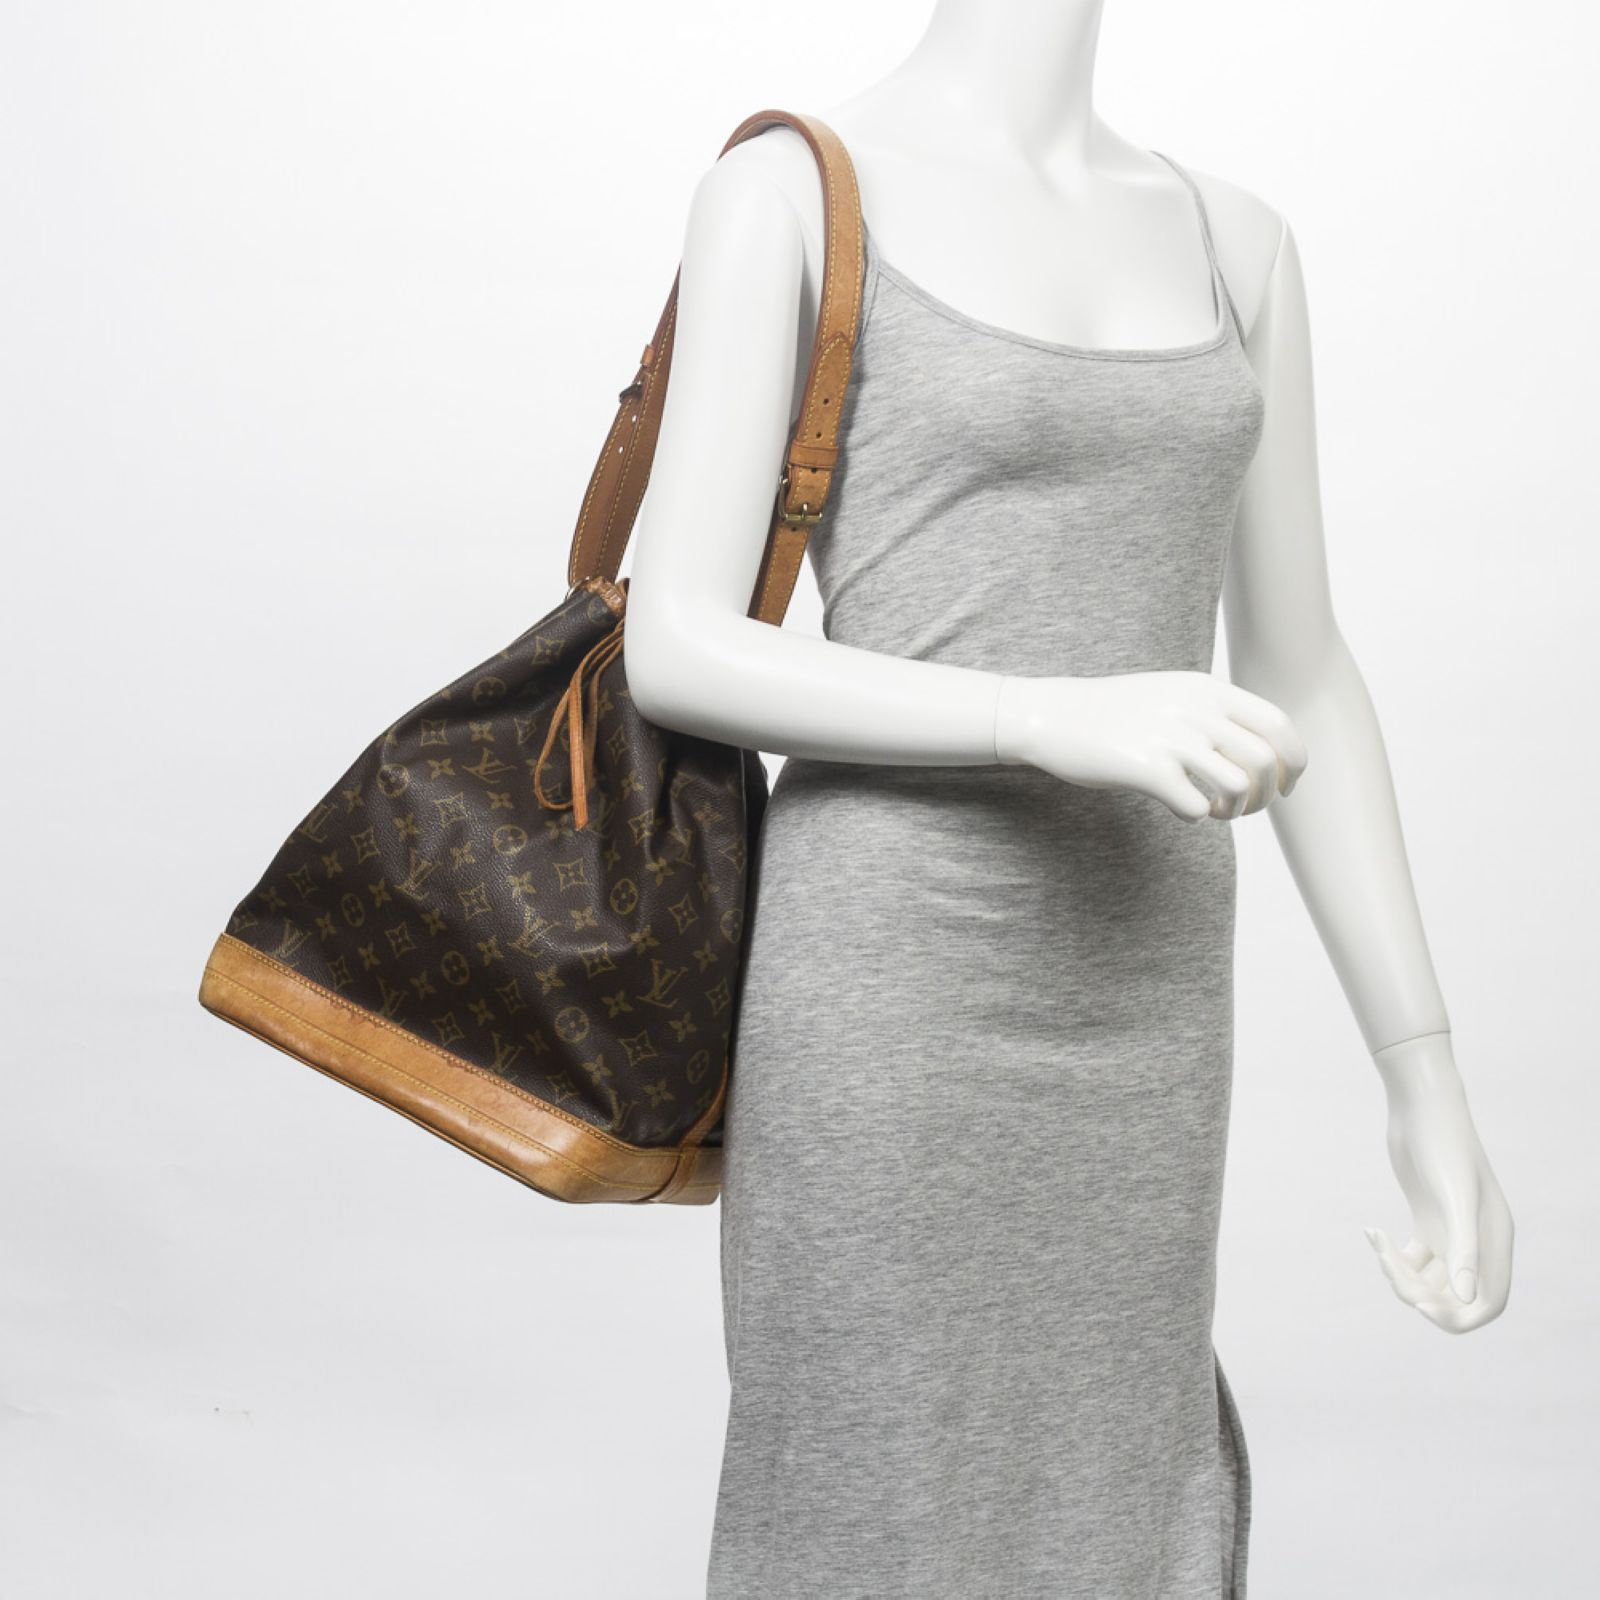 Vuitton - Cheap Handbags, Fashion Leather Handbags, Free ...